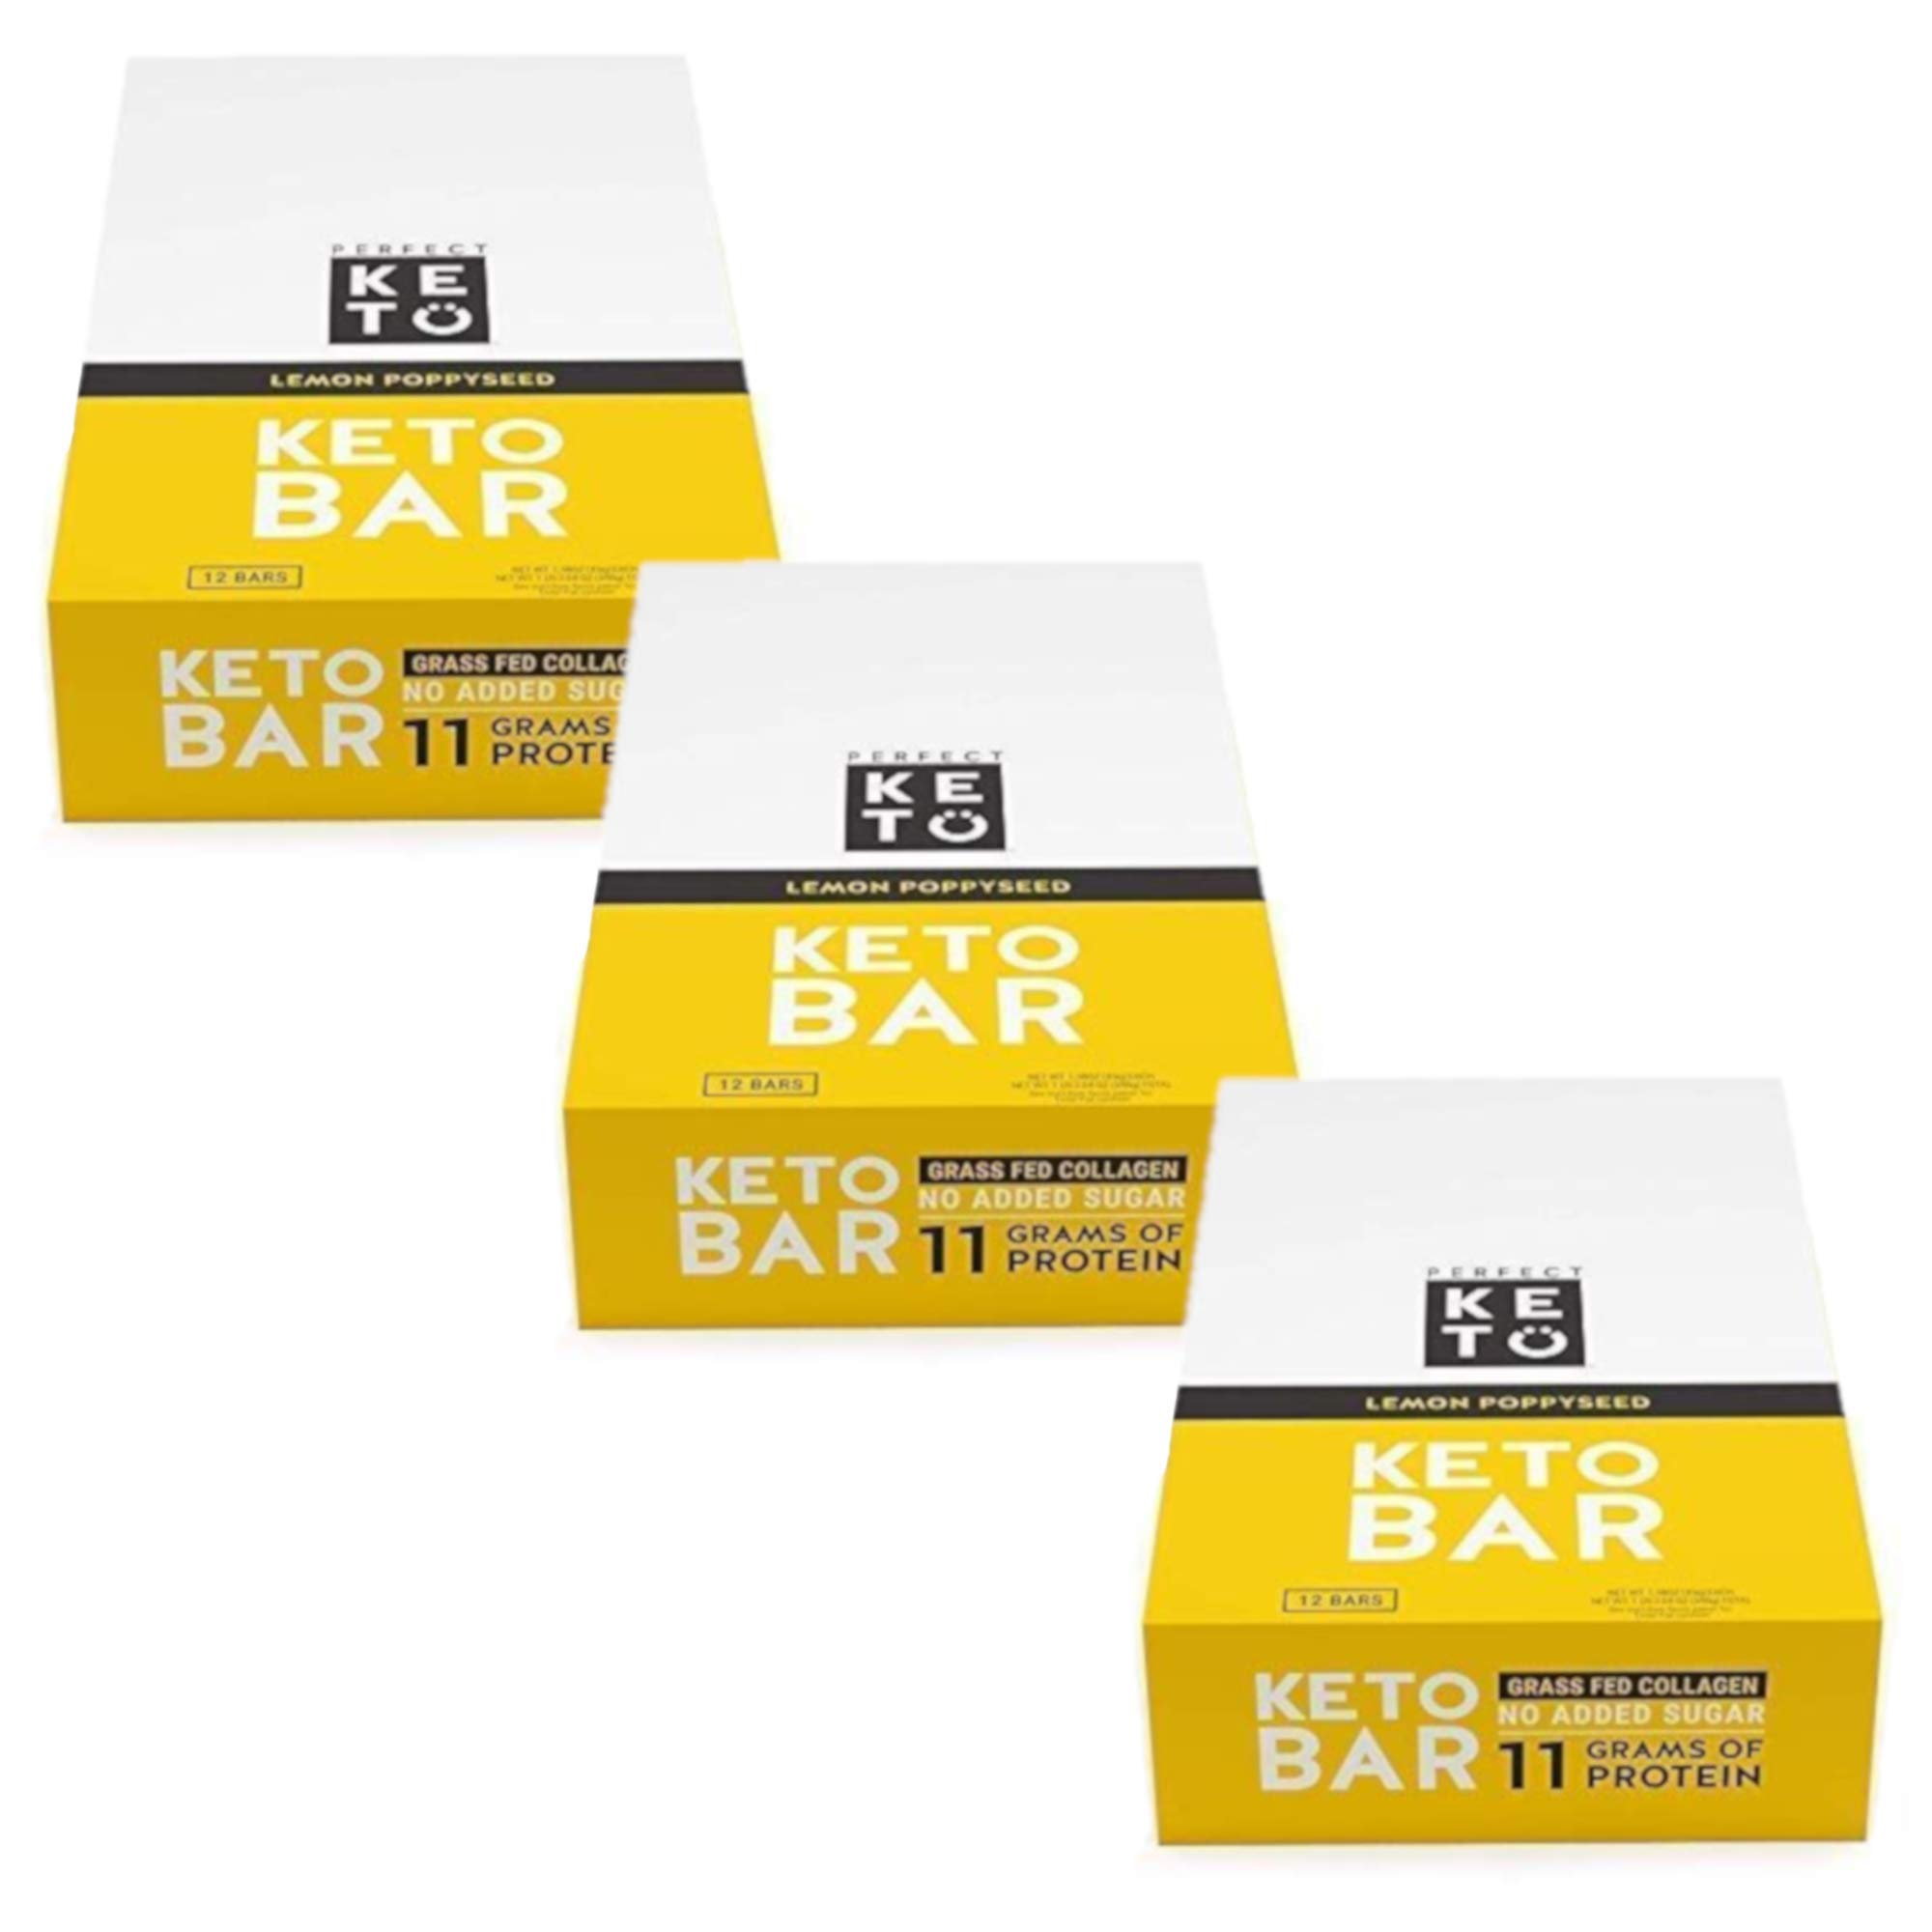 New! Perfect Keto Bar, Keto Snack (12 Count), No Added Sugar. 10g of Protein, Coconut Oil, and Collagen, with a Touch of Sea Salt and Stevia. (3 Boxes, Lemon Poppyseed)